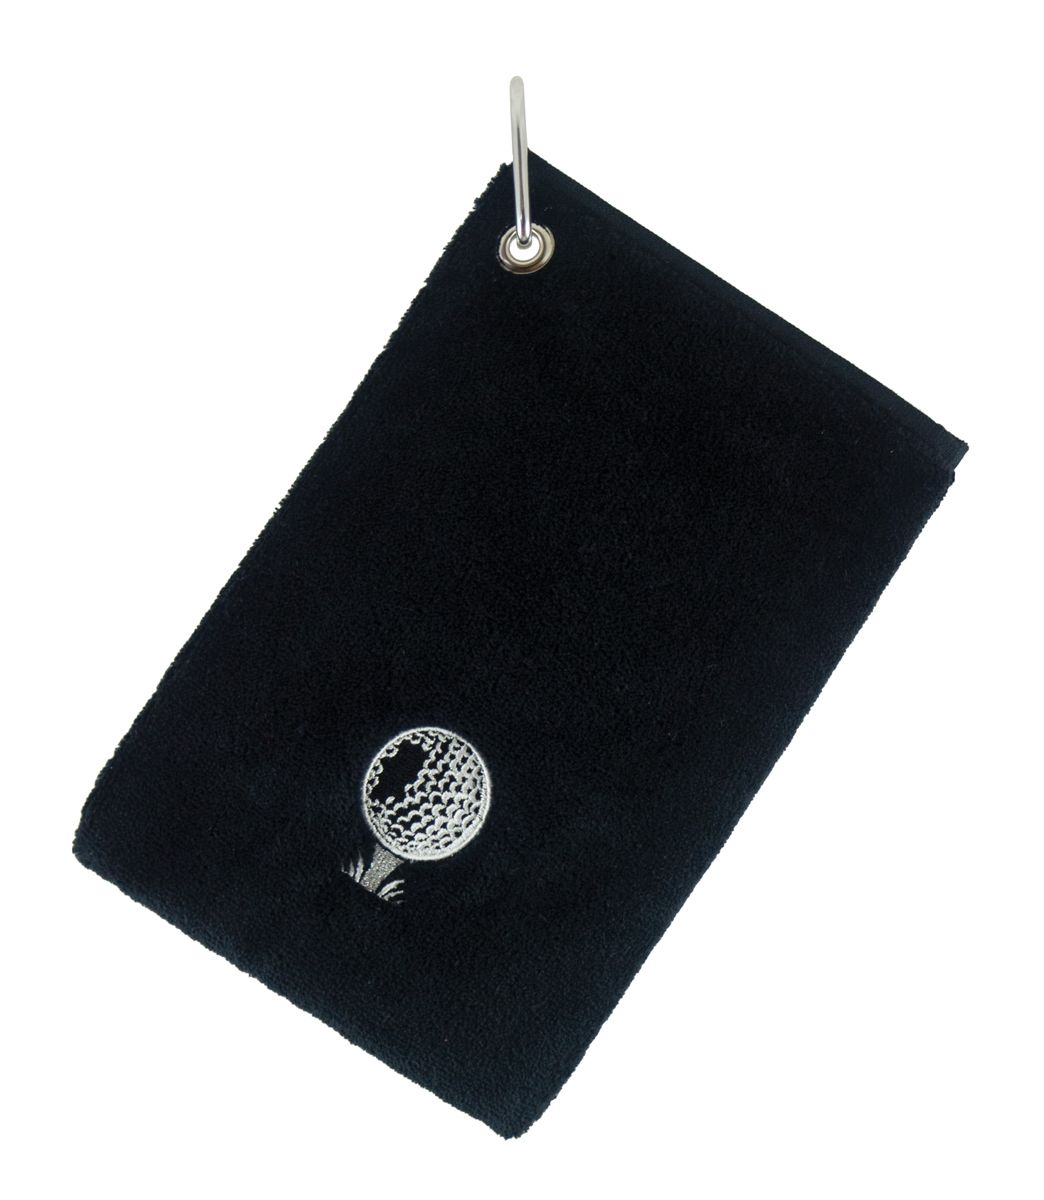 Surprizeshop Towel Bag - Black